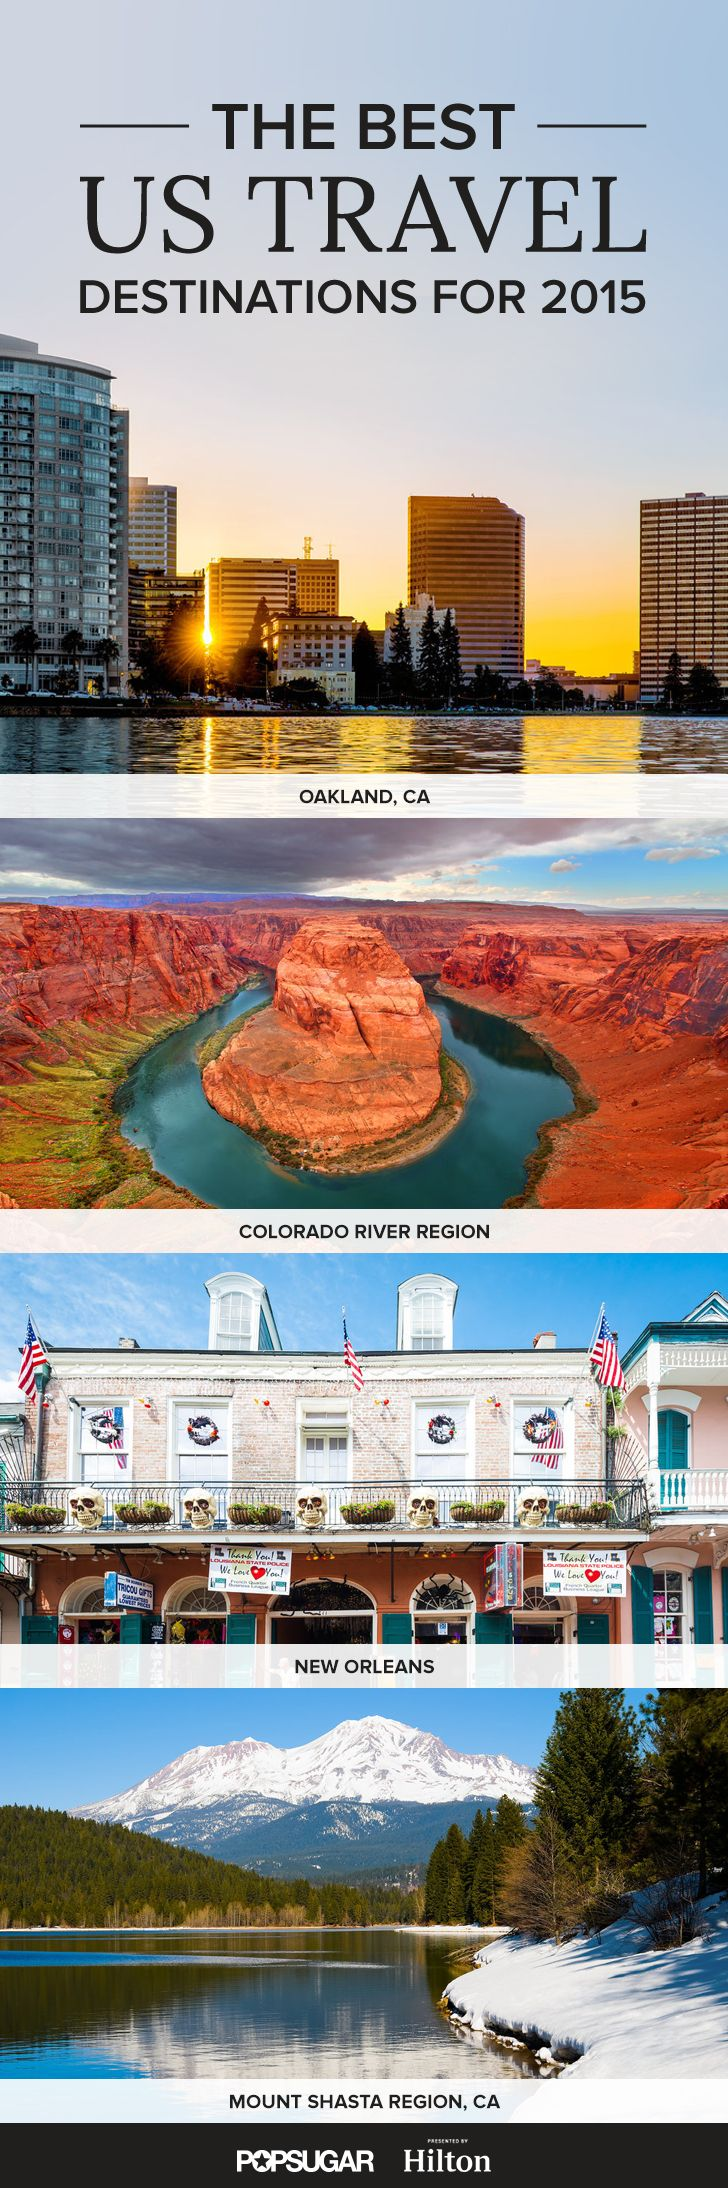 is there a place in america where 5 states meet together